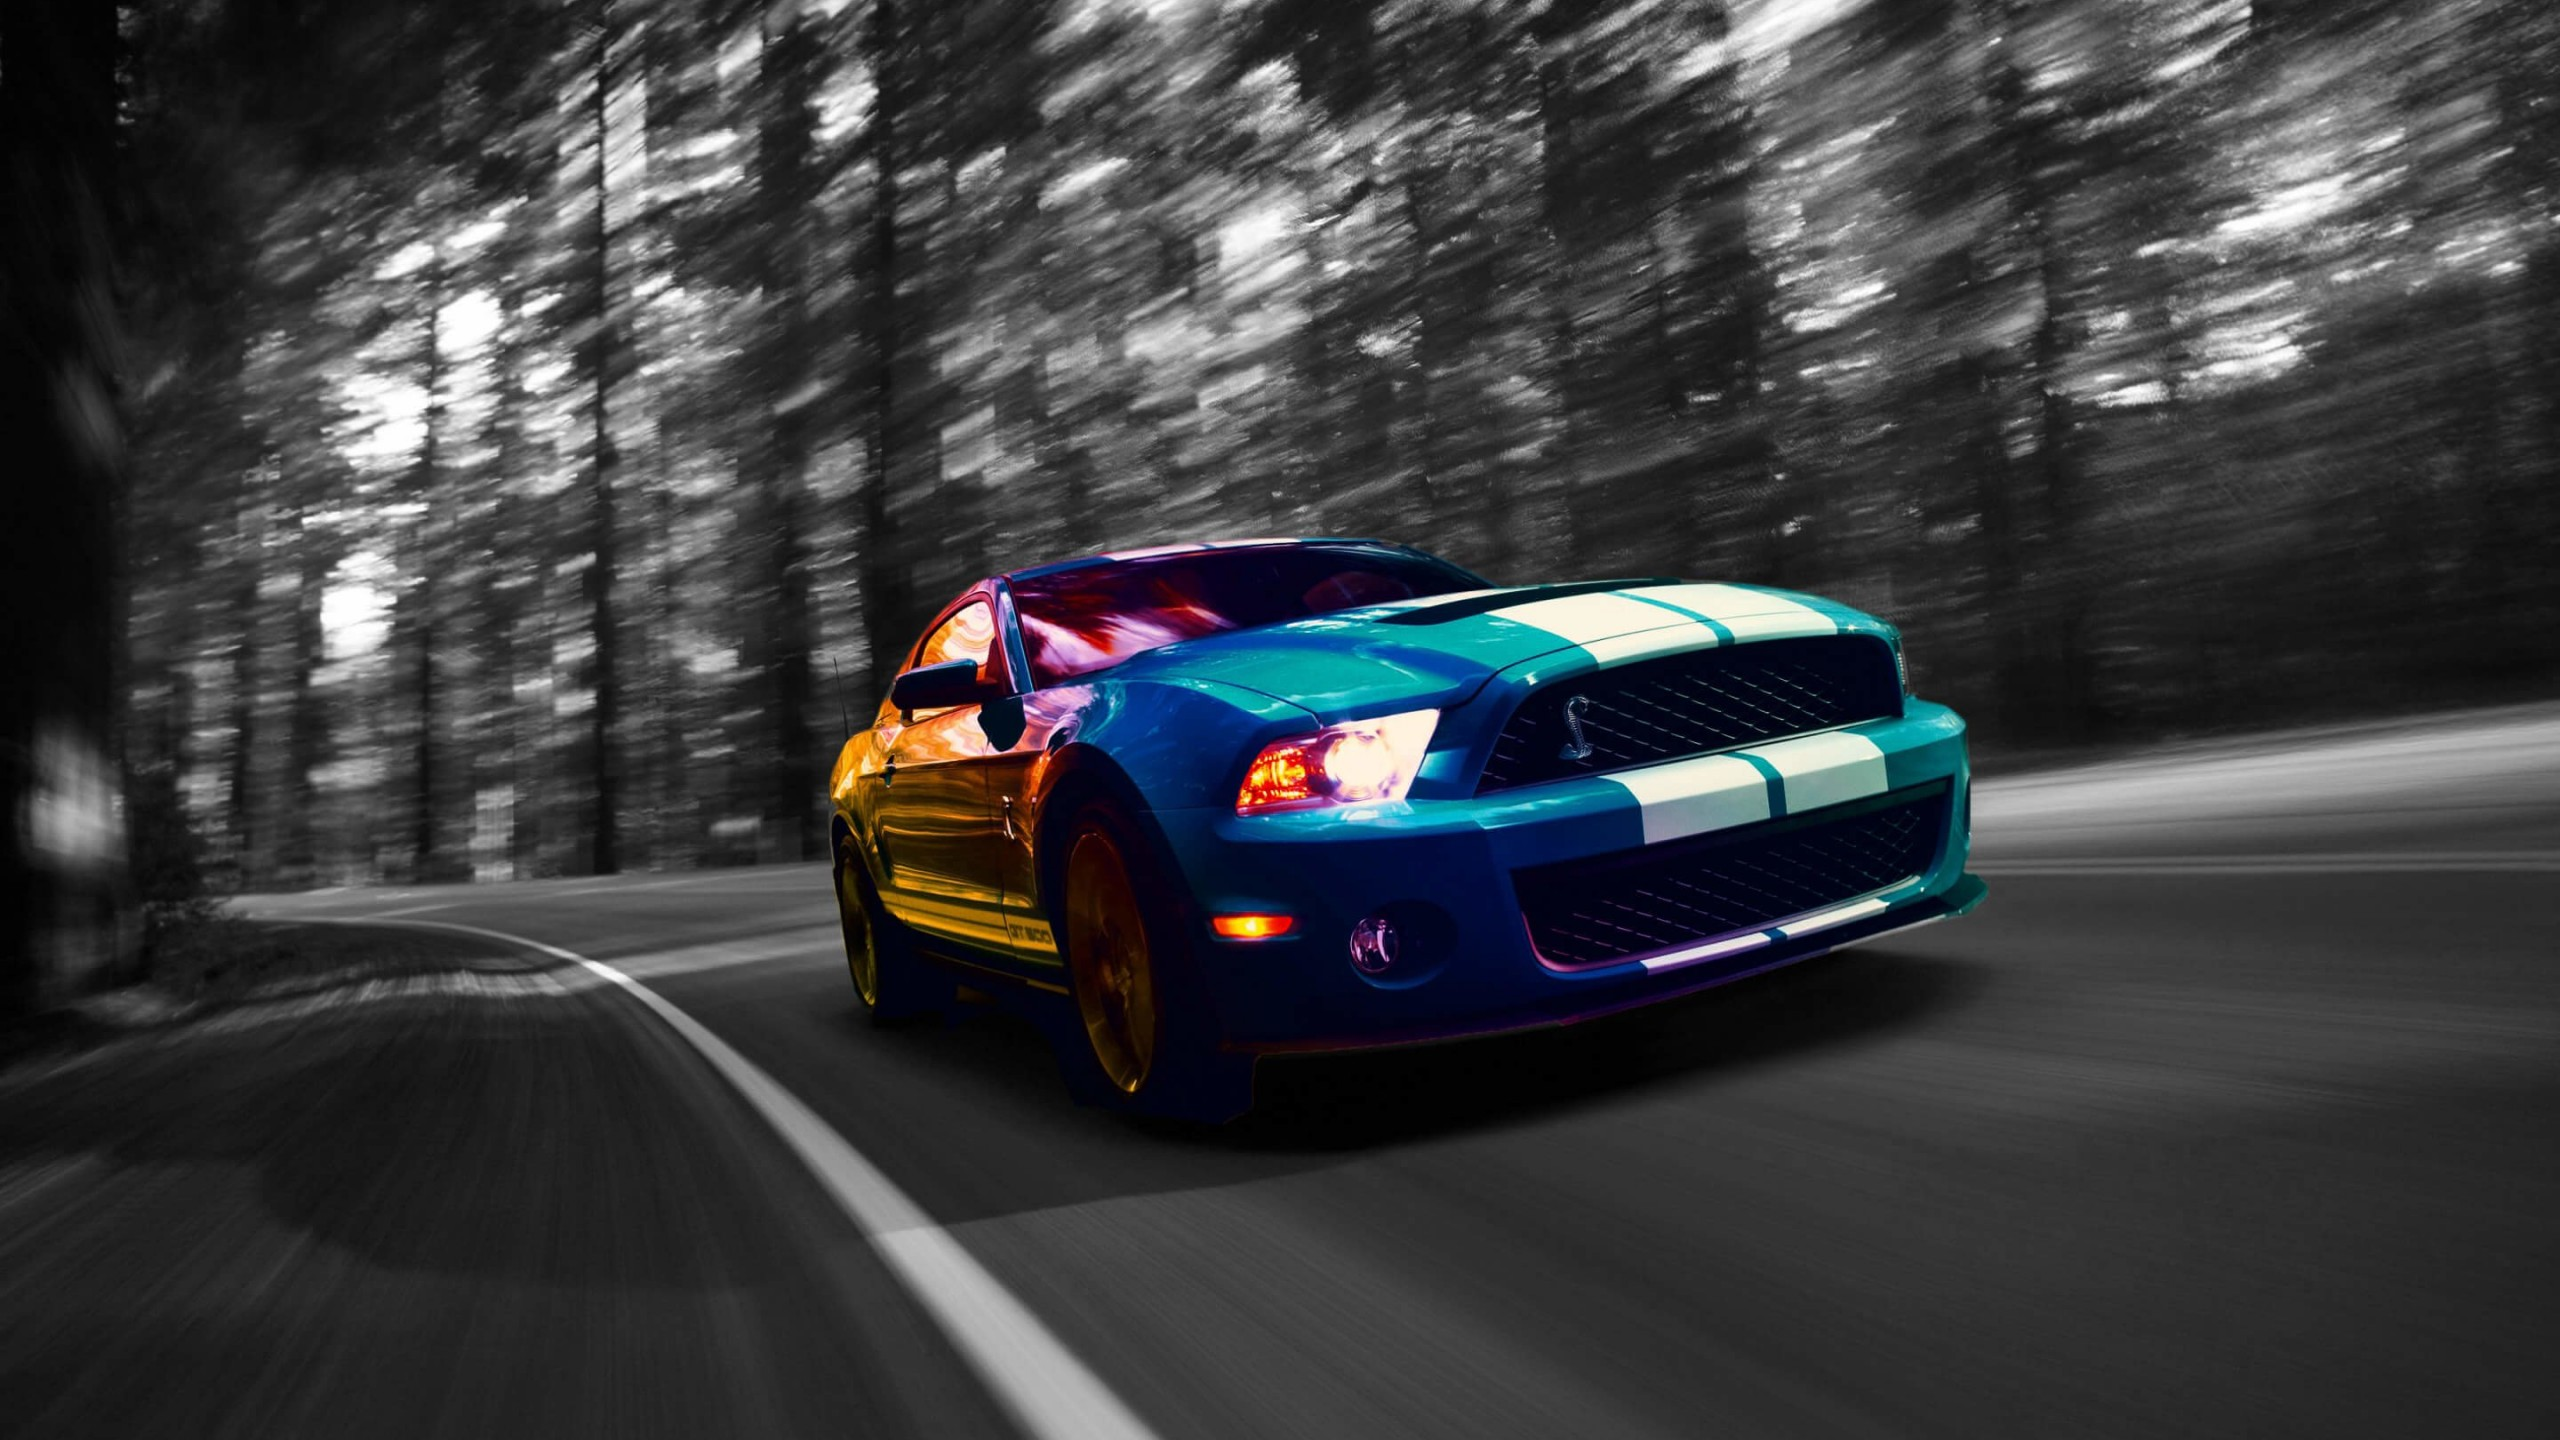 Ford Mustang Shelby GT500 Wallpaper for Desktop 2560x1440